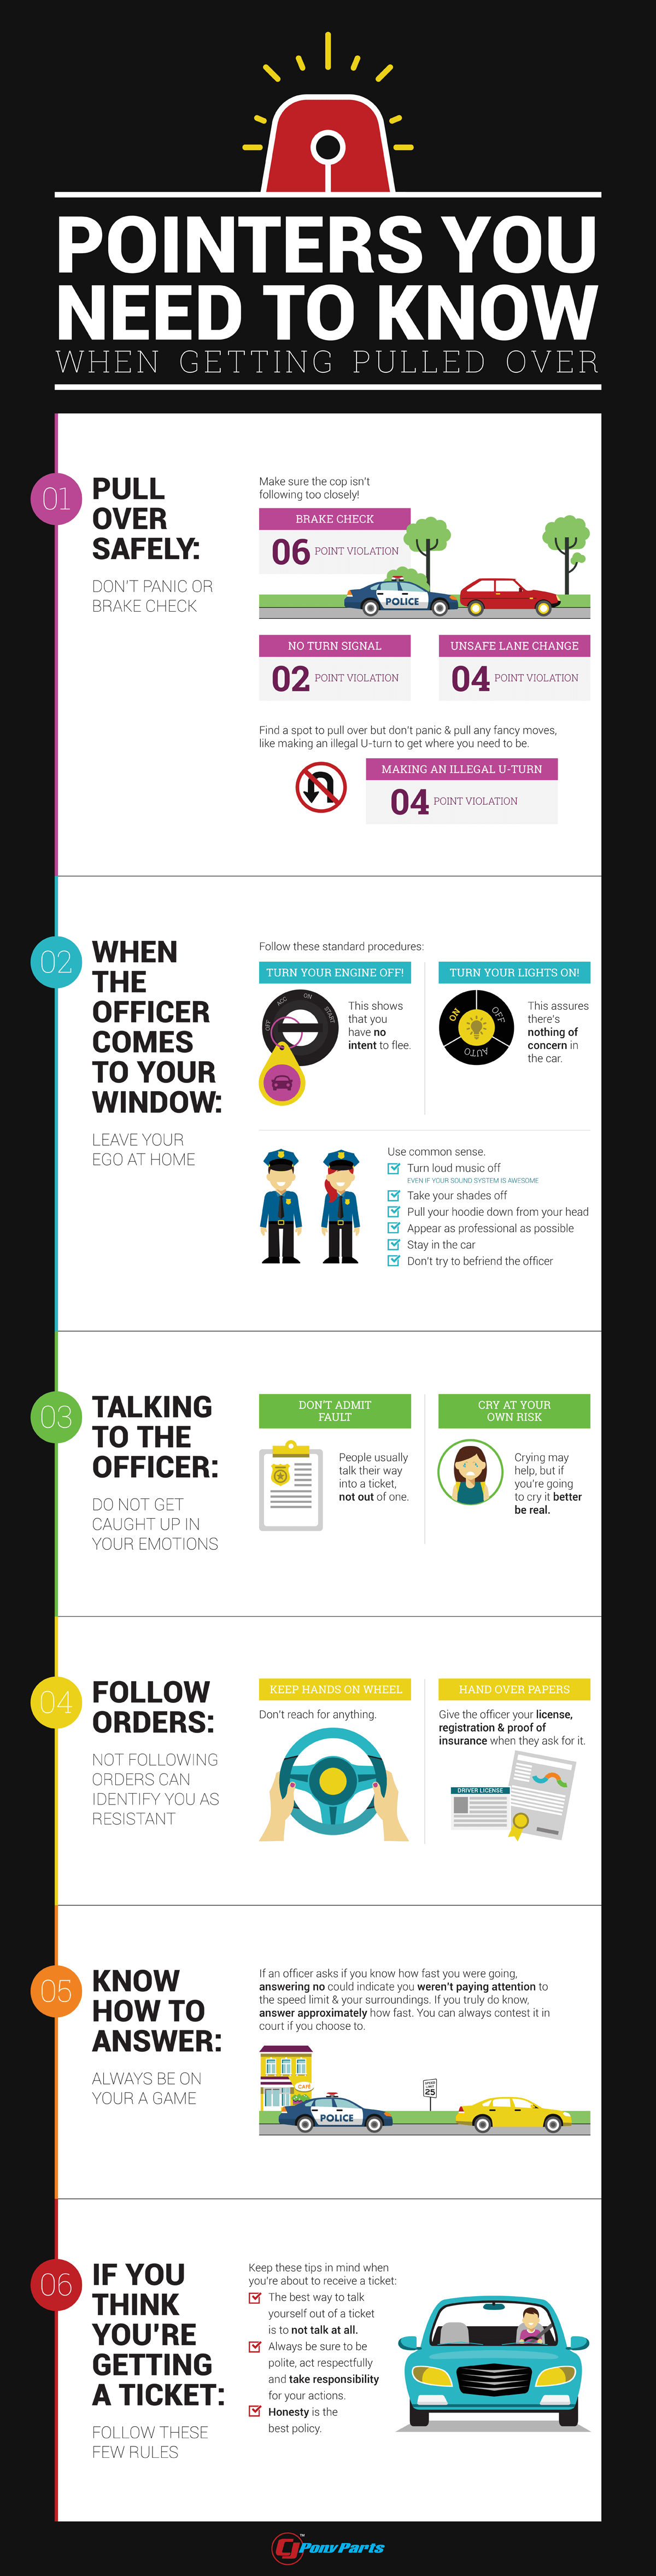 Pointers You Need To Know When Getting Pulled Over